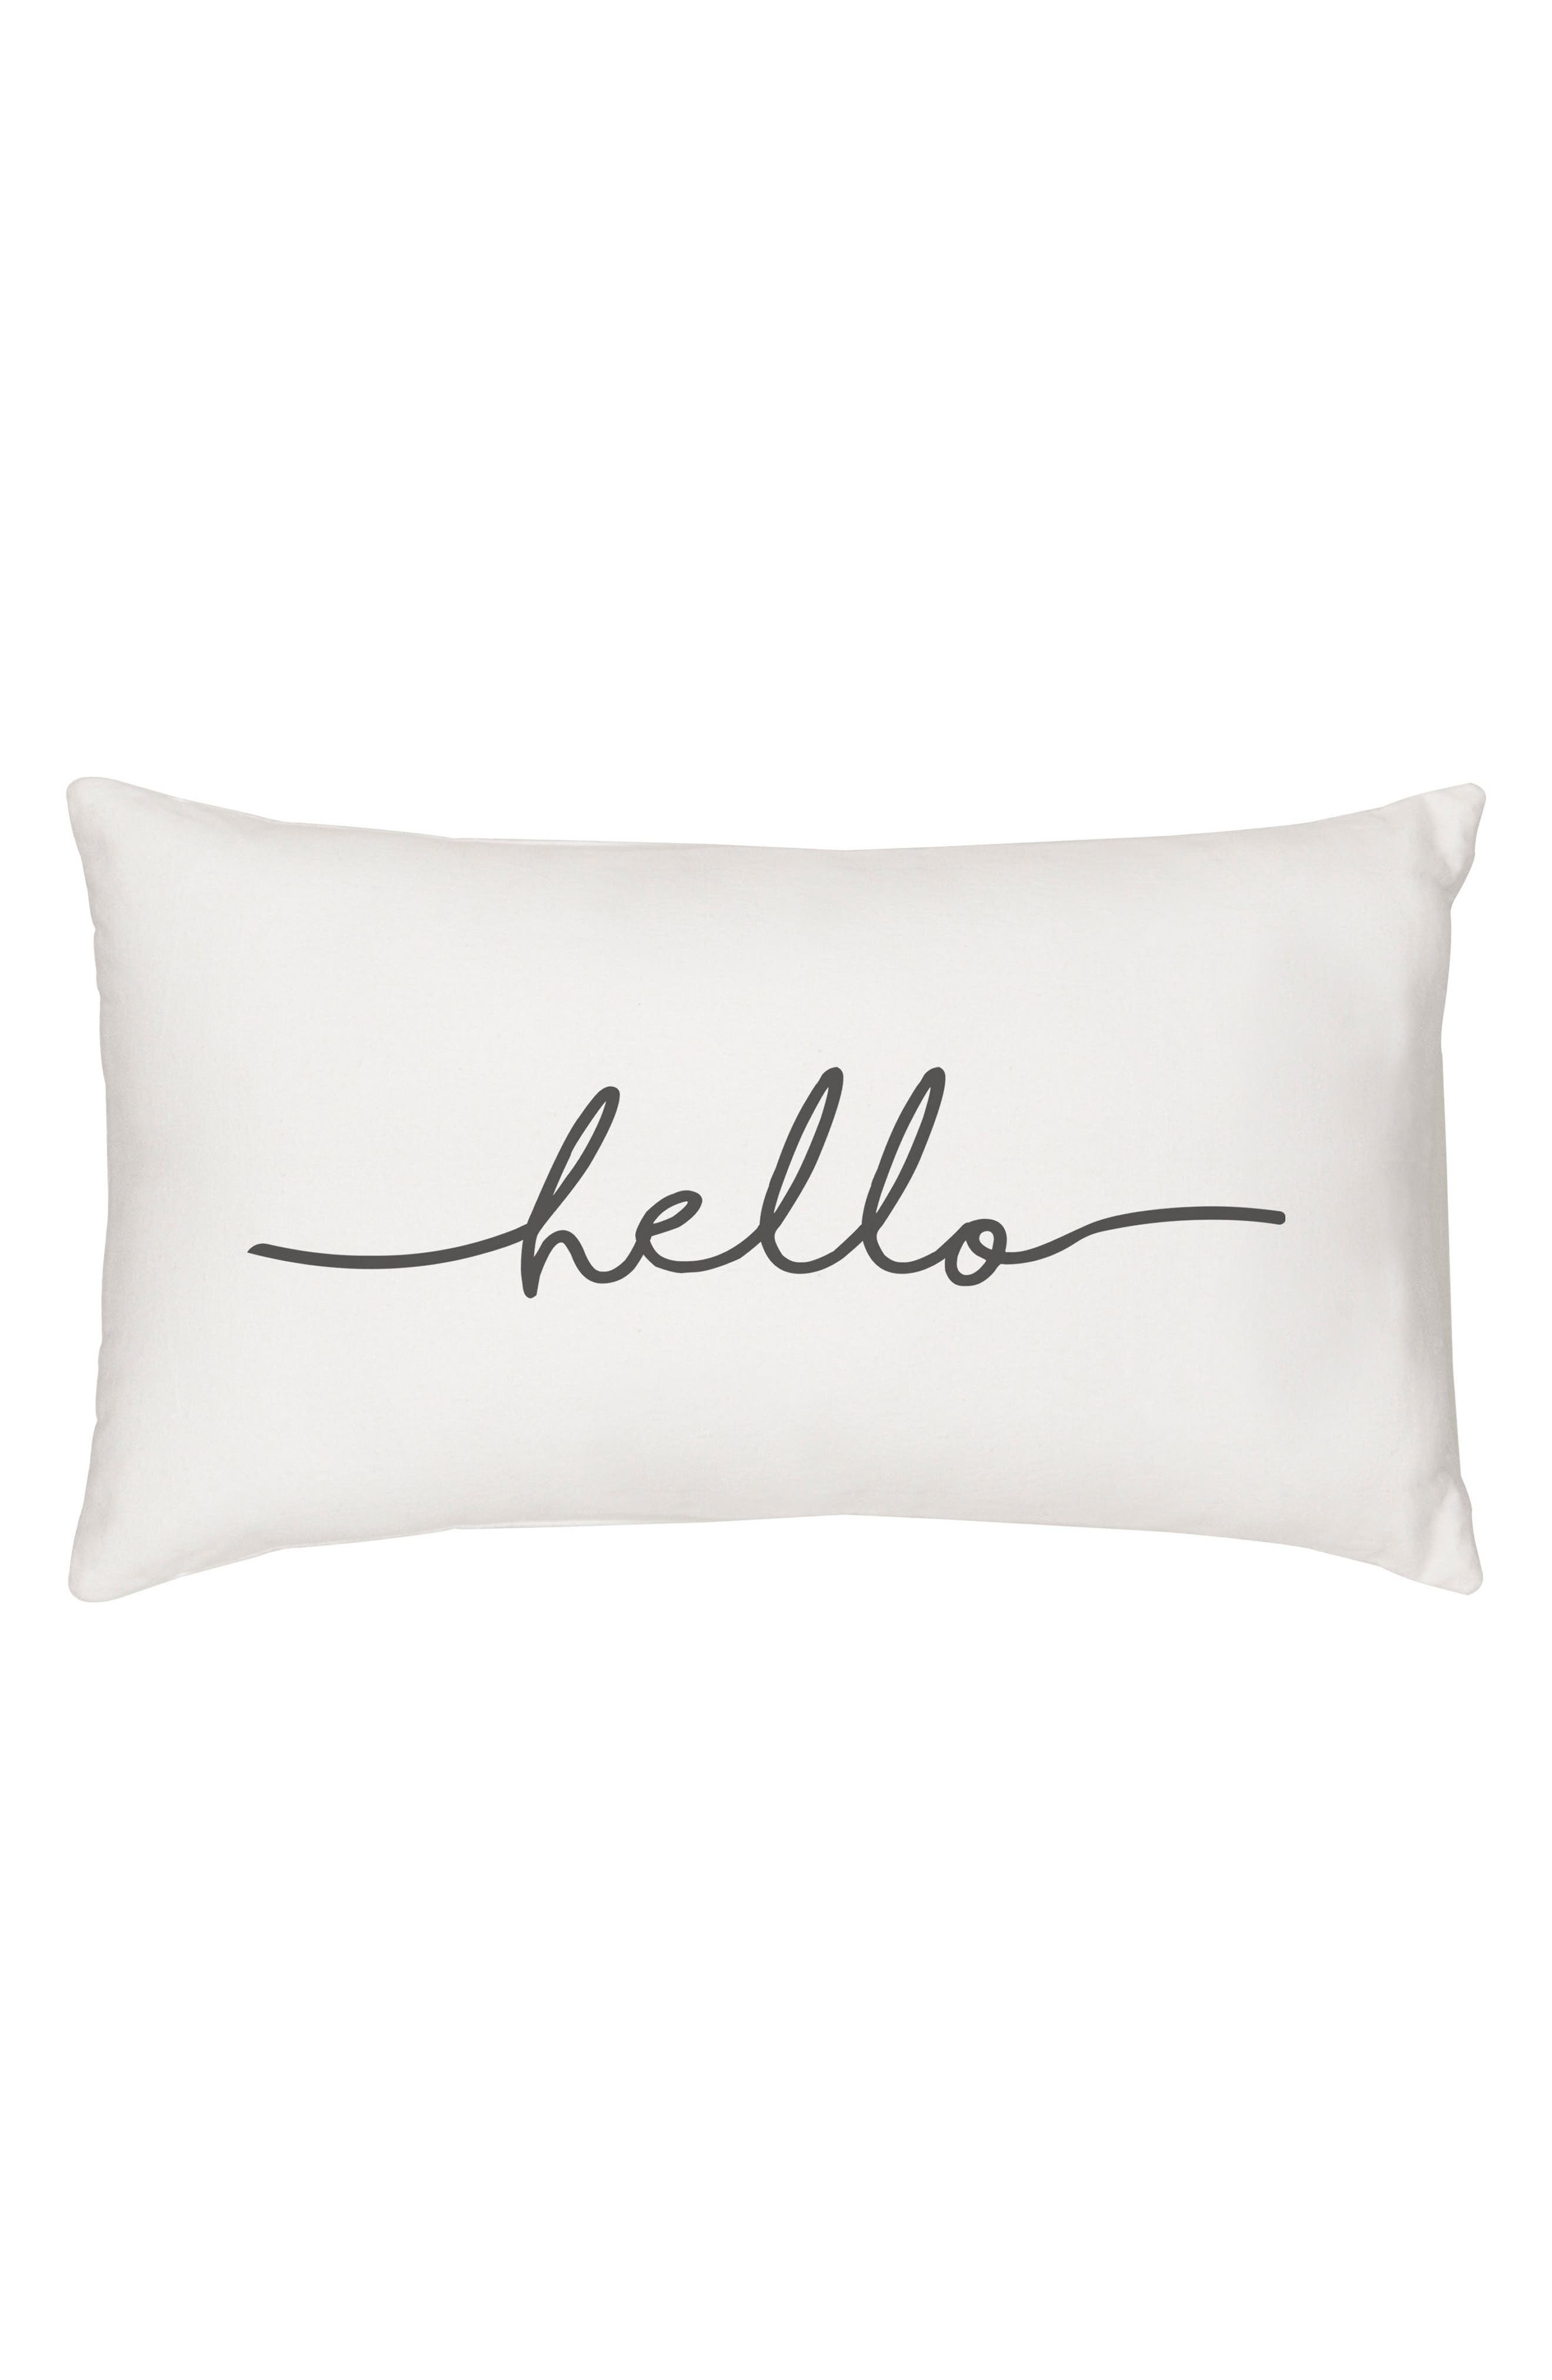 Main Image - Cathy's Concepts Hello Lumbar Accent Pillow